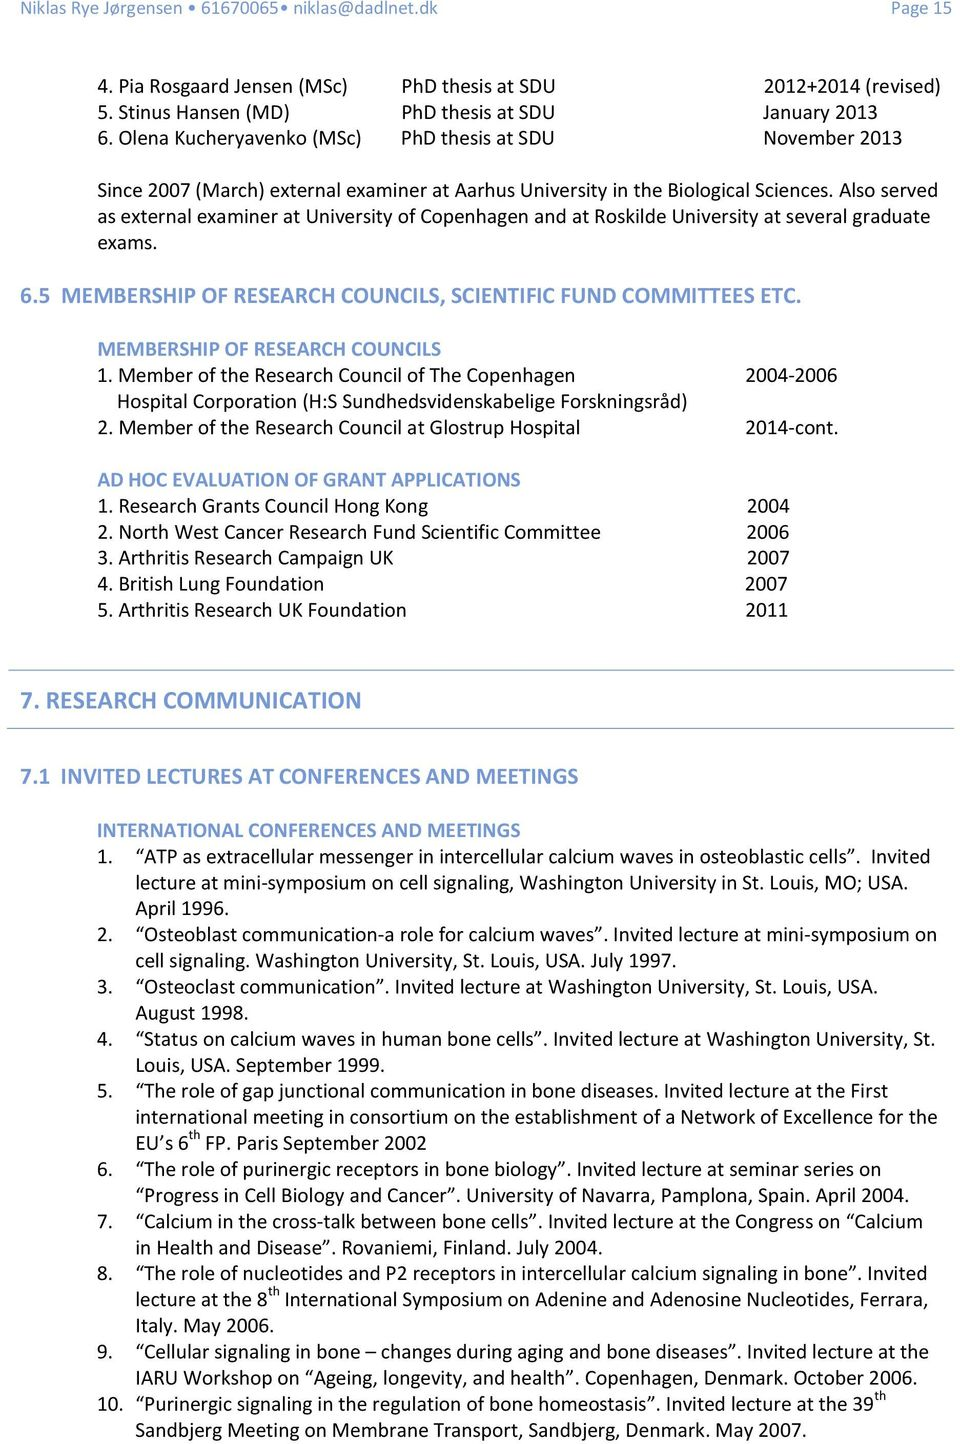 Also served as external examiner at University of Copenhagen and at Roskilde University at several graduate exams. 6.5 MEMBERSHIP OF RESEARCH COUNCILS, SCIENTIFIC FUND COMMITTEES ETC.